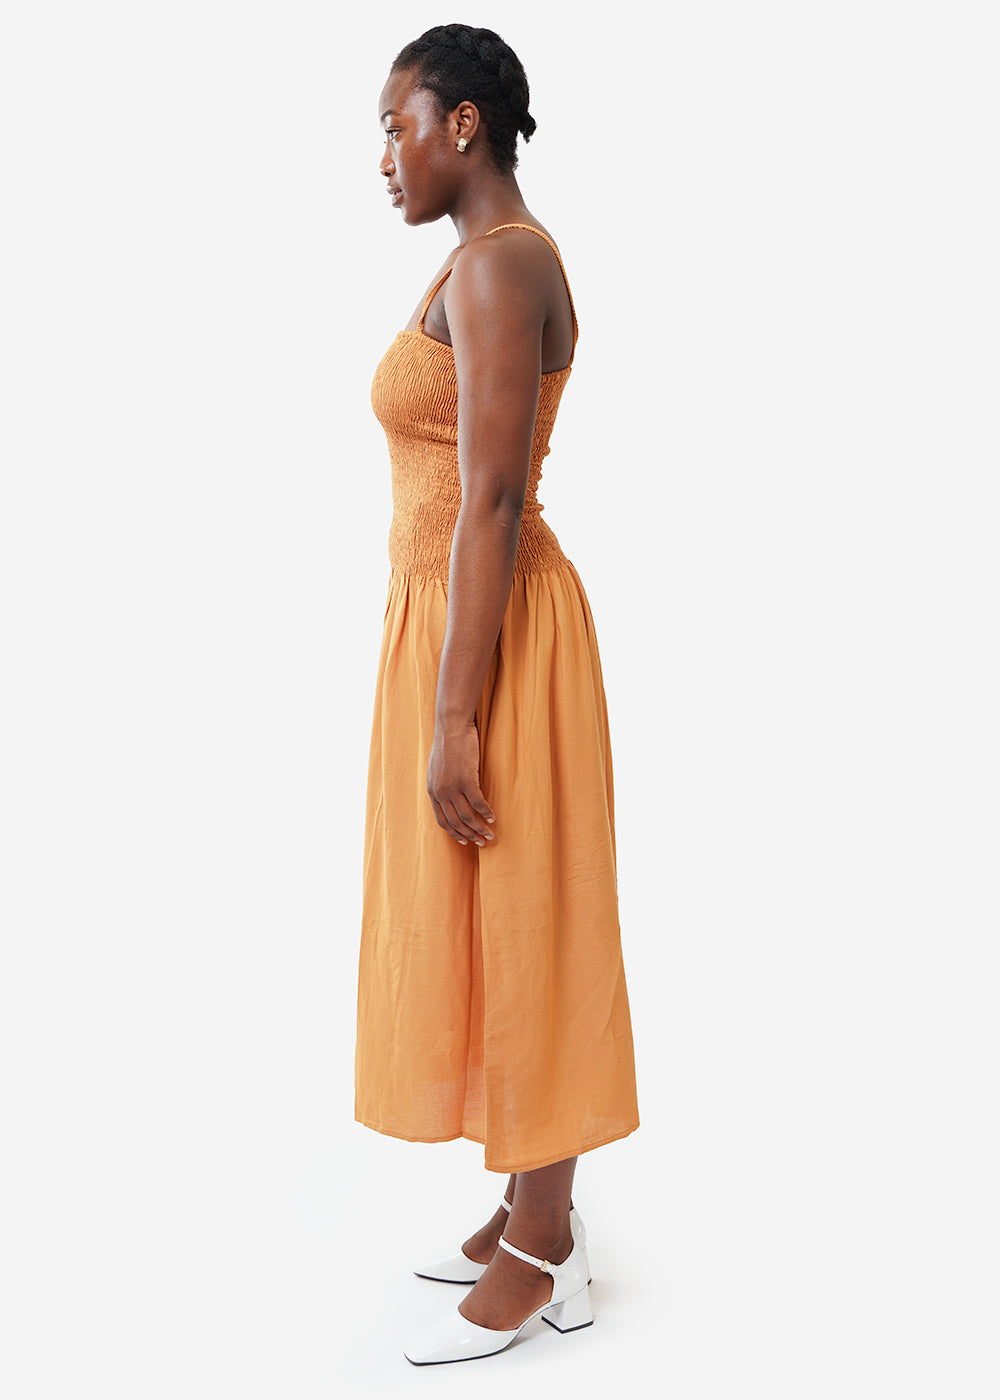 Paloma Wool Benidorm Dress — Shop sustainable fashion and slow fashion at New Classics Studios